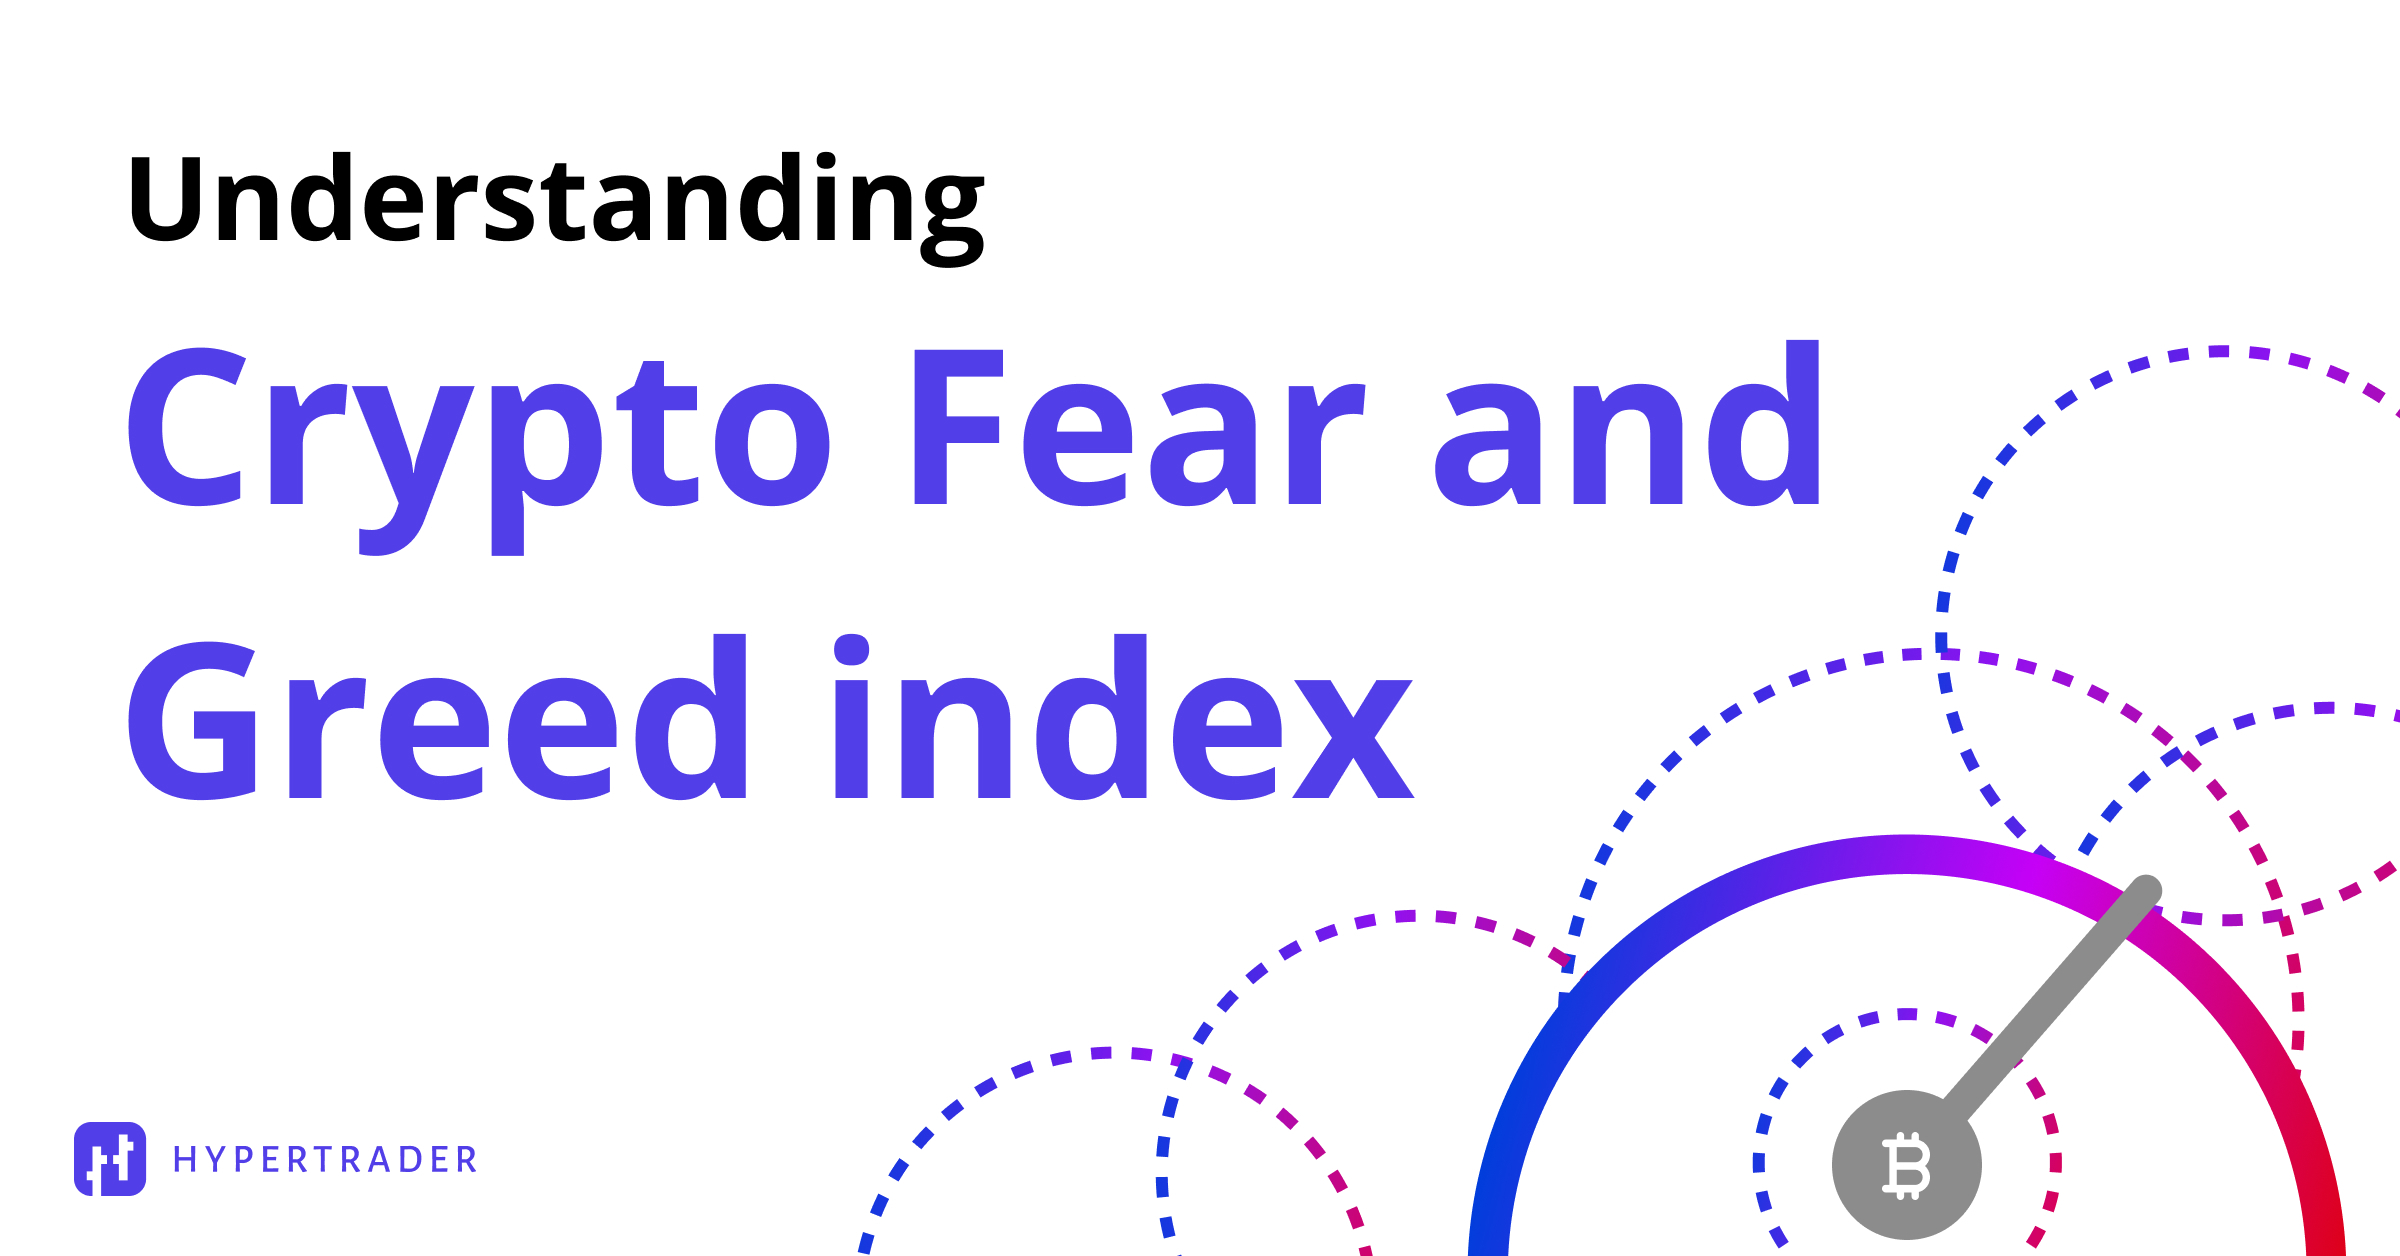 What is Crypto Fear and Greed Index?